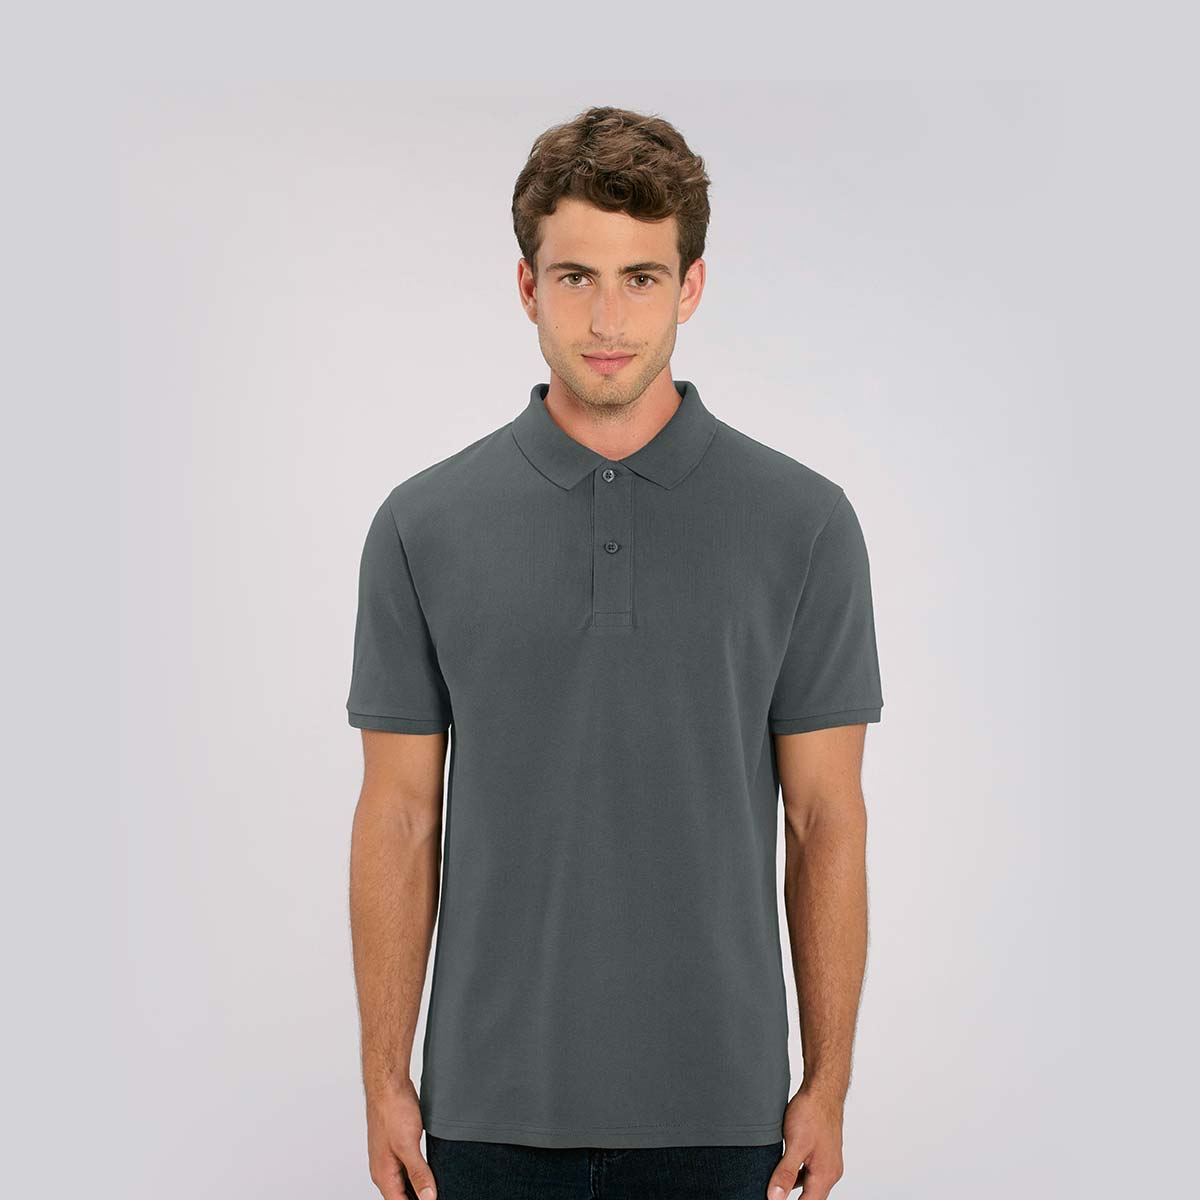 Men's branded organic cotton polo shirts by Framme and Stanley/Stella